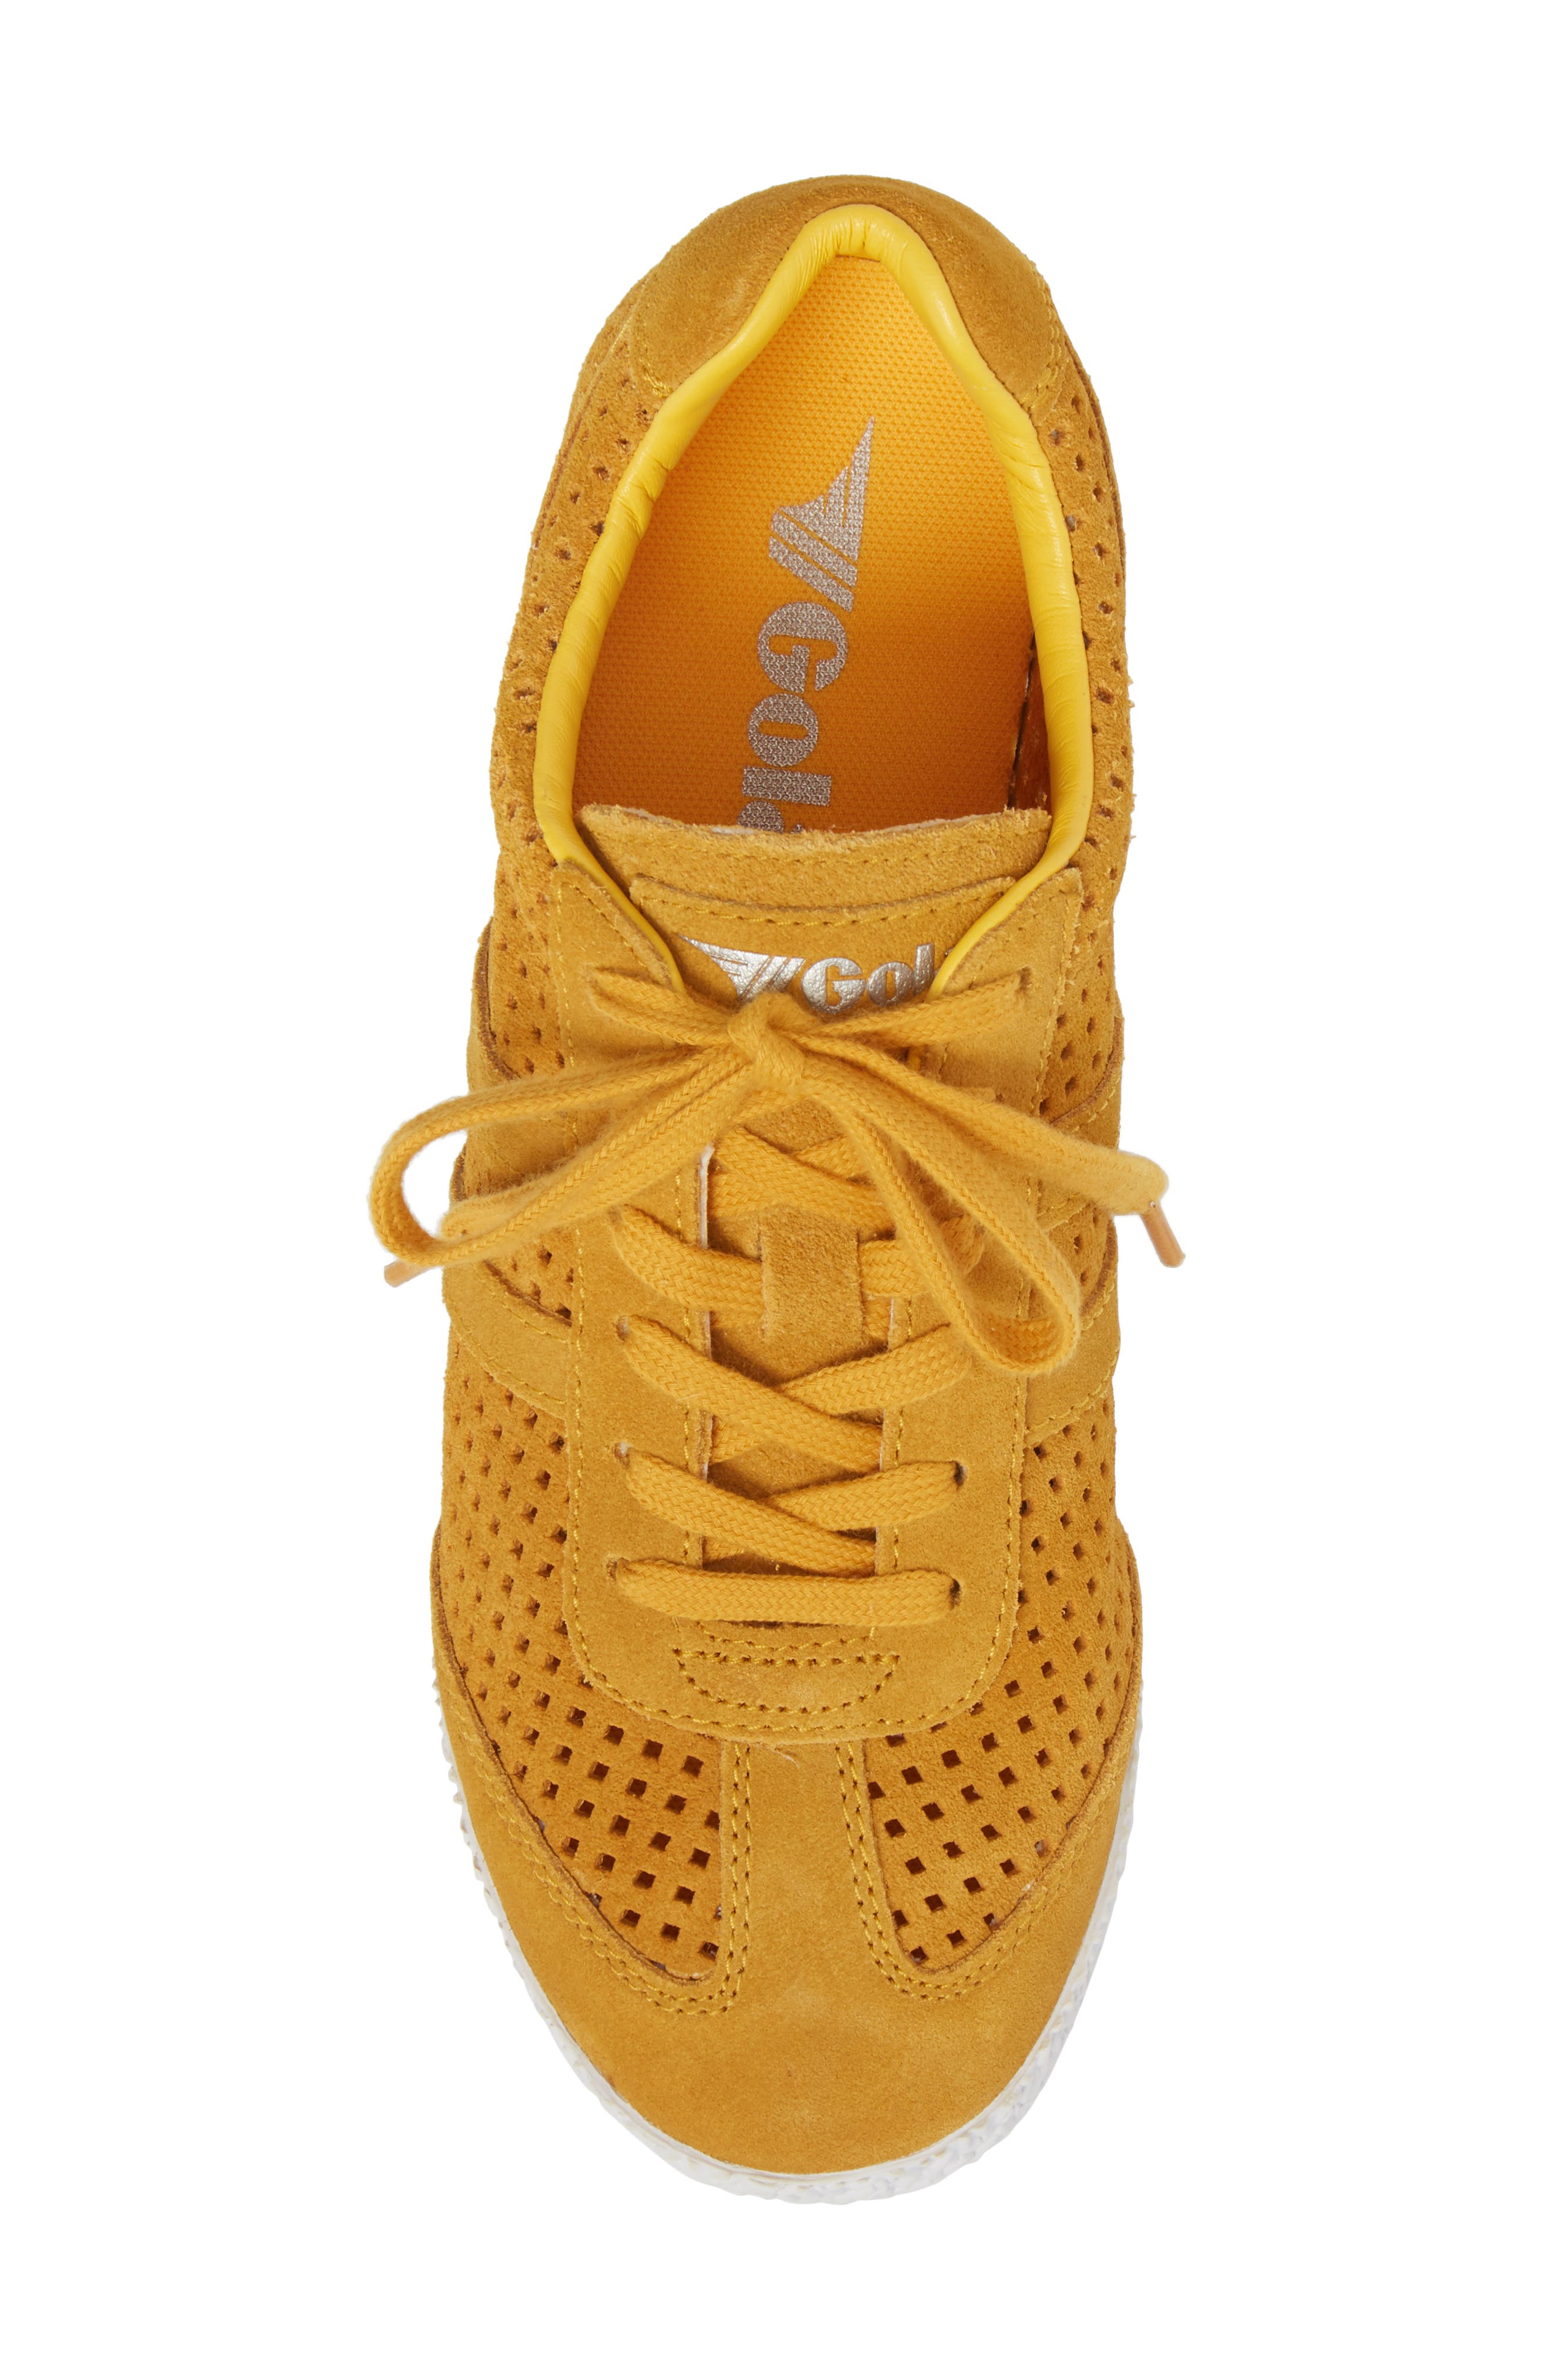 Harrier Squared Low Top Sneaker,                             Alternate thumbnail 5, color,                             700